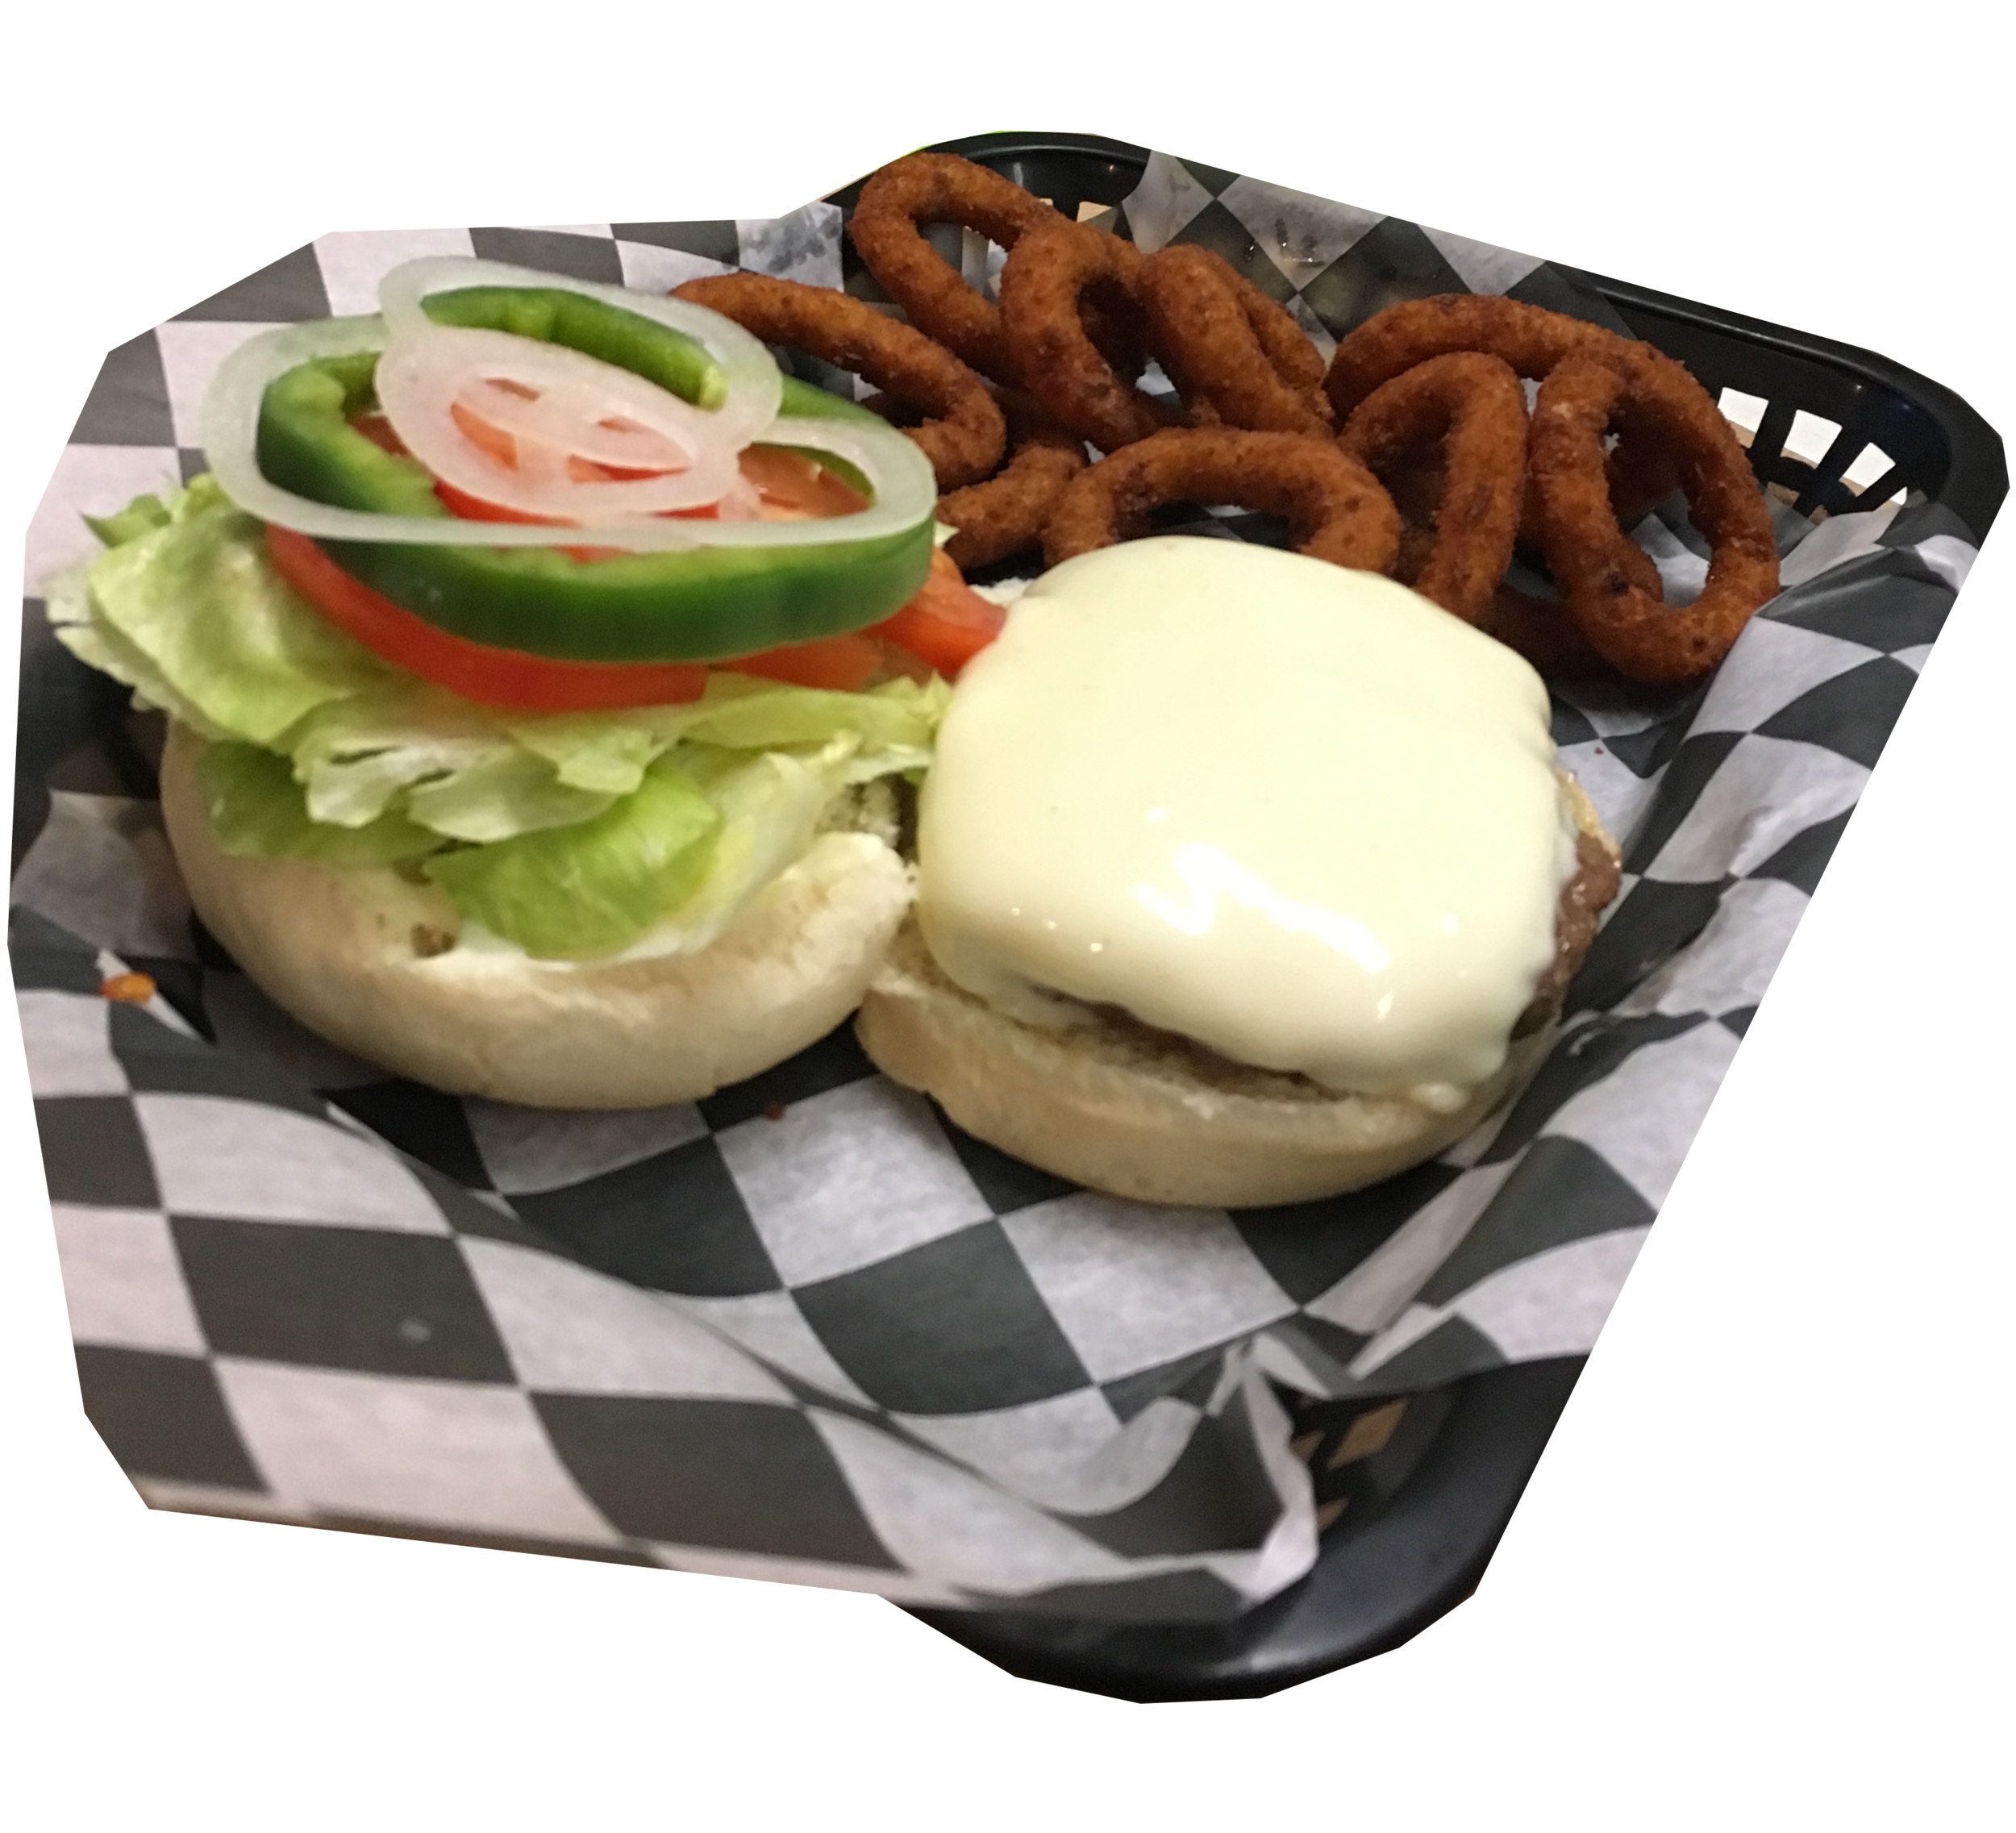 California Cheese Burger and Onion Rings